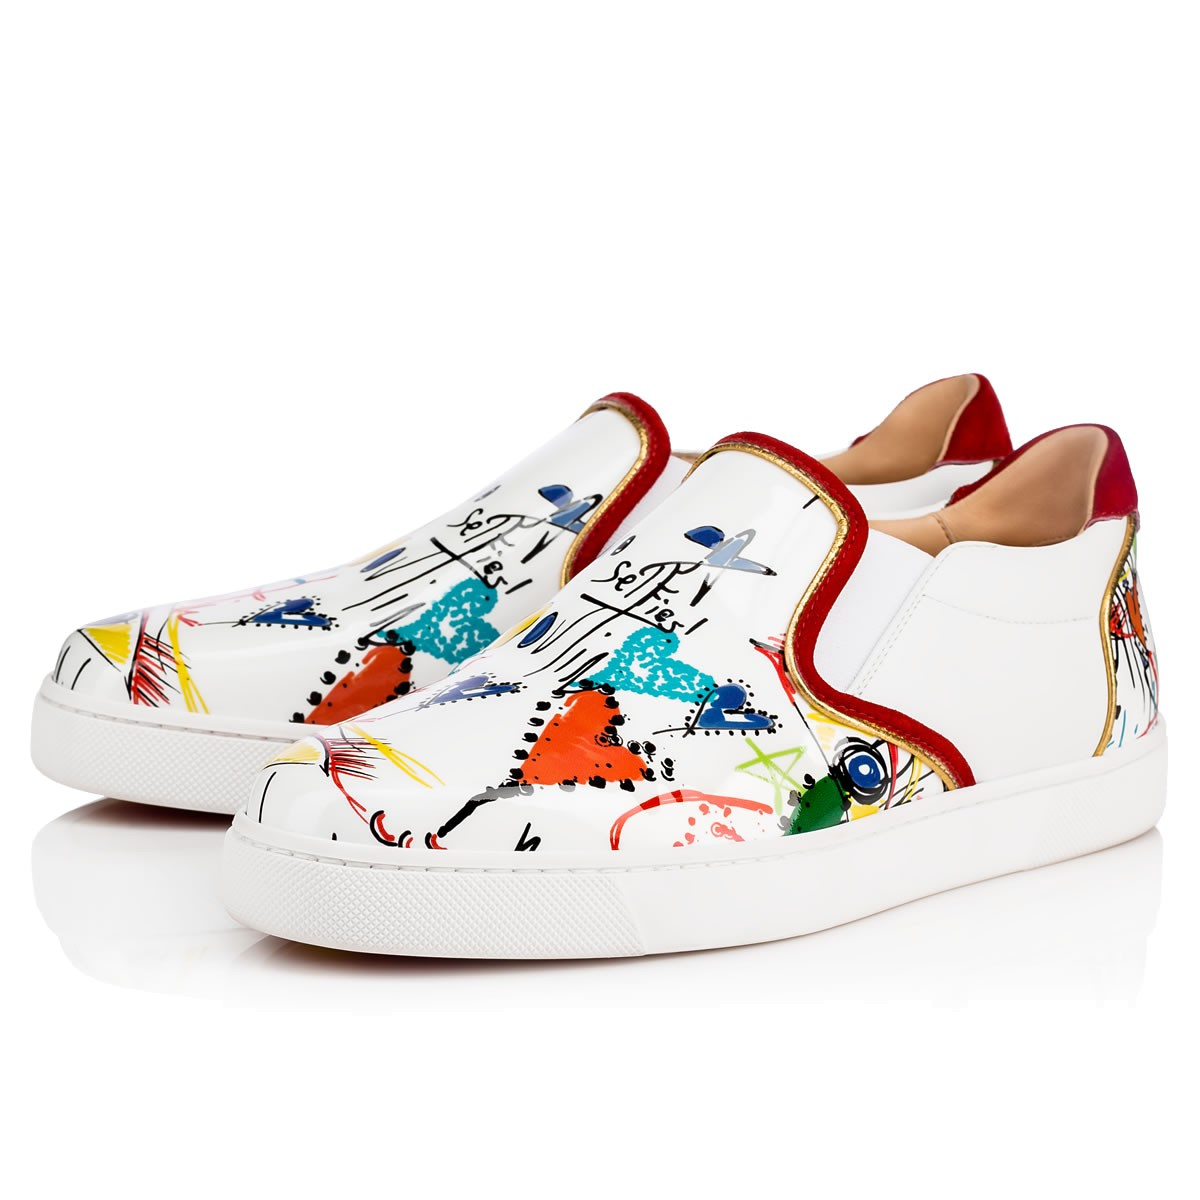 Slip on sneakers stampate Christian Louboutin